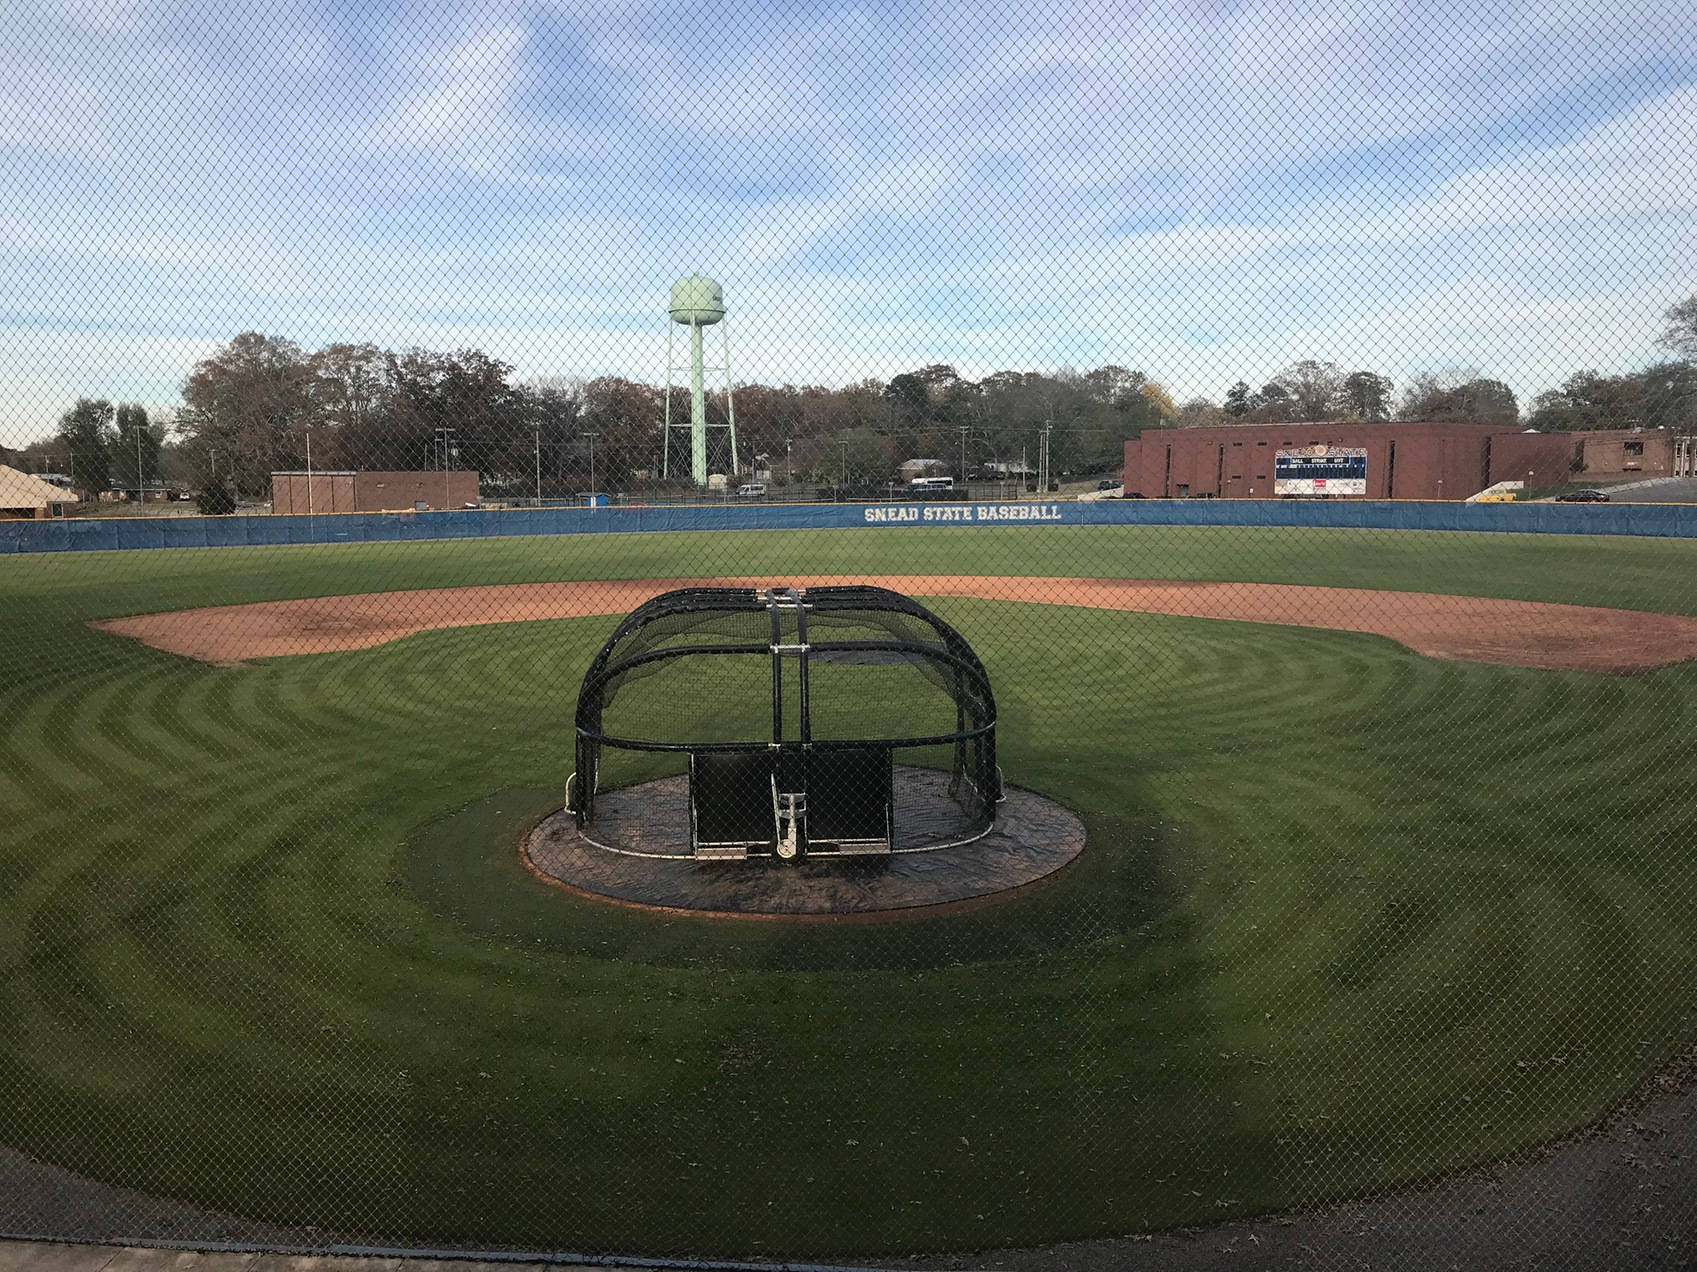 a photo of the snead state baseball field